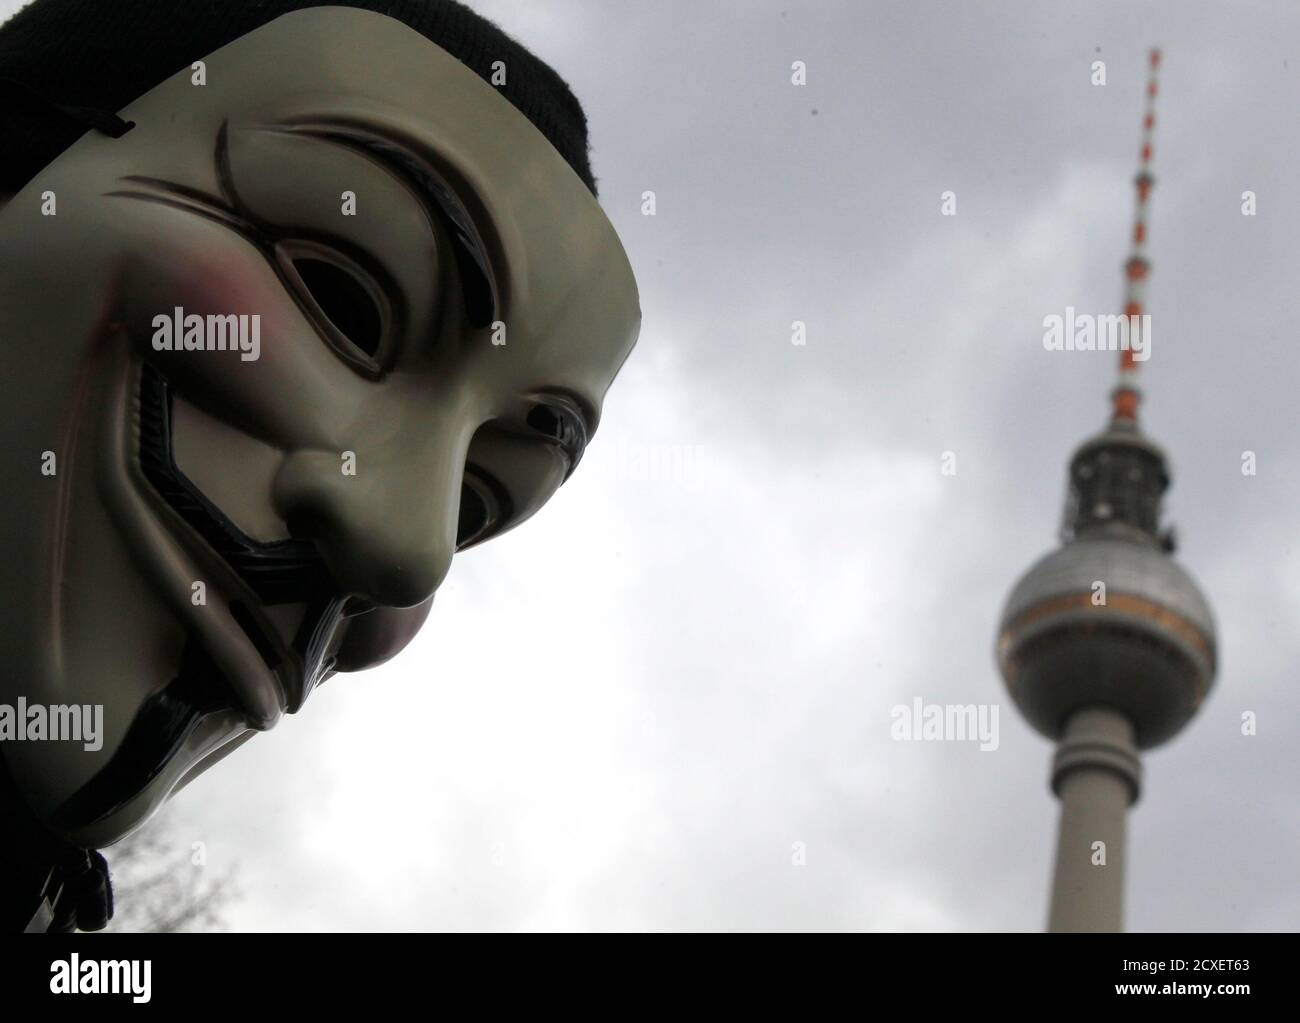 A protestor wearing Guy Fawkes masks participates in a demonstration next to the television tower against the Anti-Counterfeiting Trade Agreement (ACTA) in Berlin February 25, 2012. Protesters fear that ACTA, which aims to cut trademark theft and other online piracy, will curtail freedom of expression, curb their freedom to download movies and music for free and encourage Internet surveillance. REUTERS/Tobias Schwarz (GERMANY - Tags: POLITICS CIVIL UNREST) Foto de stock